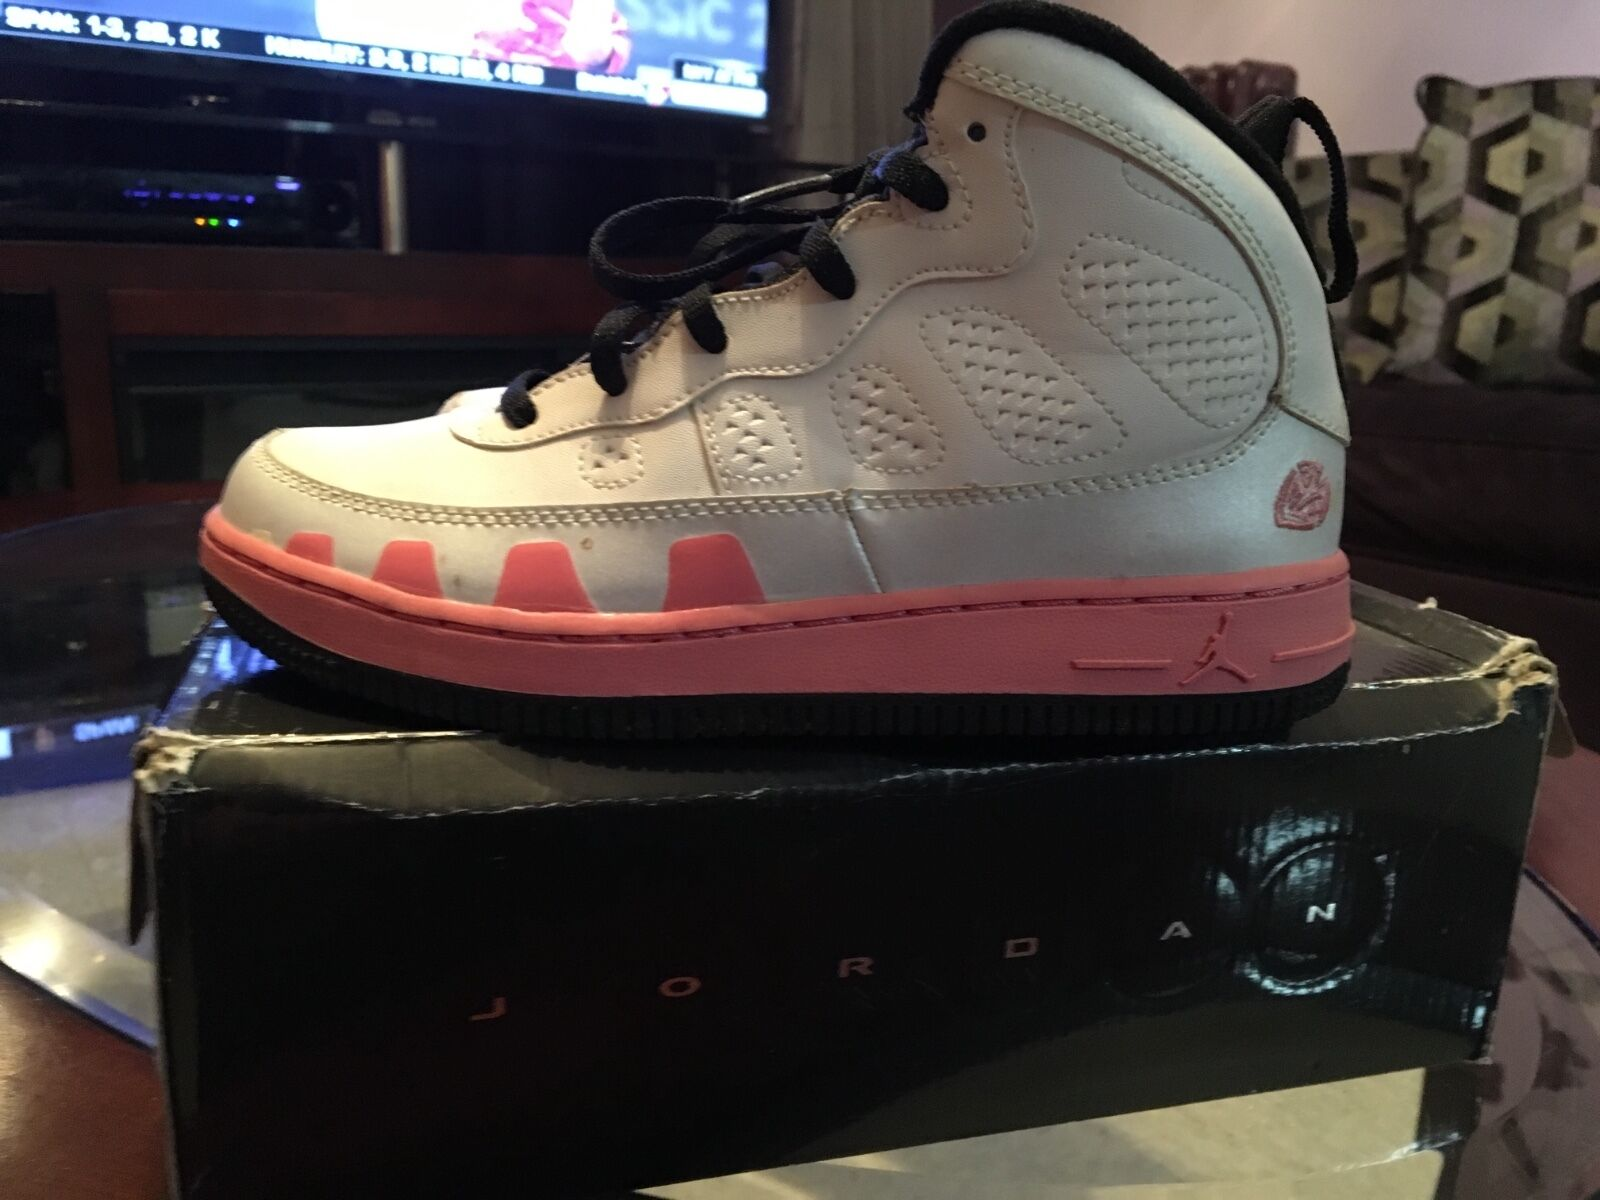 Jordan Fusion 9 pink size 3Y 2009 The most popular shoes for men and women